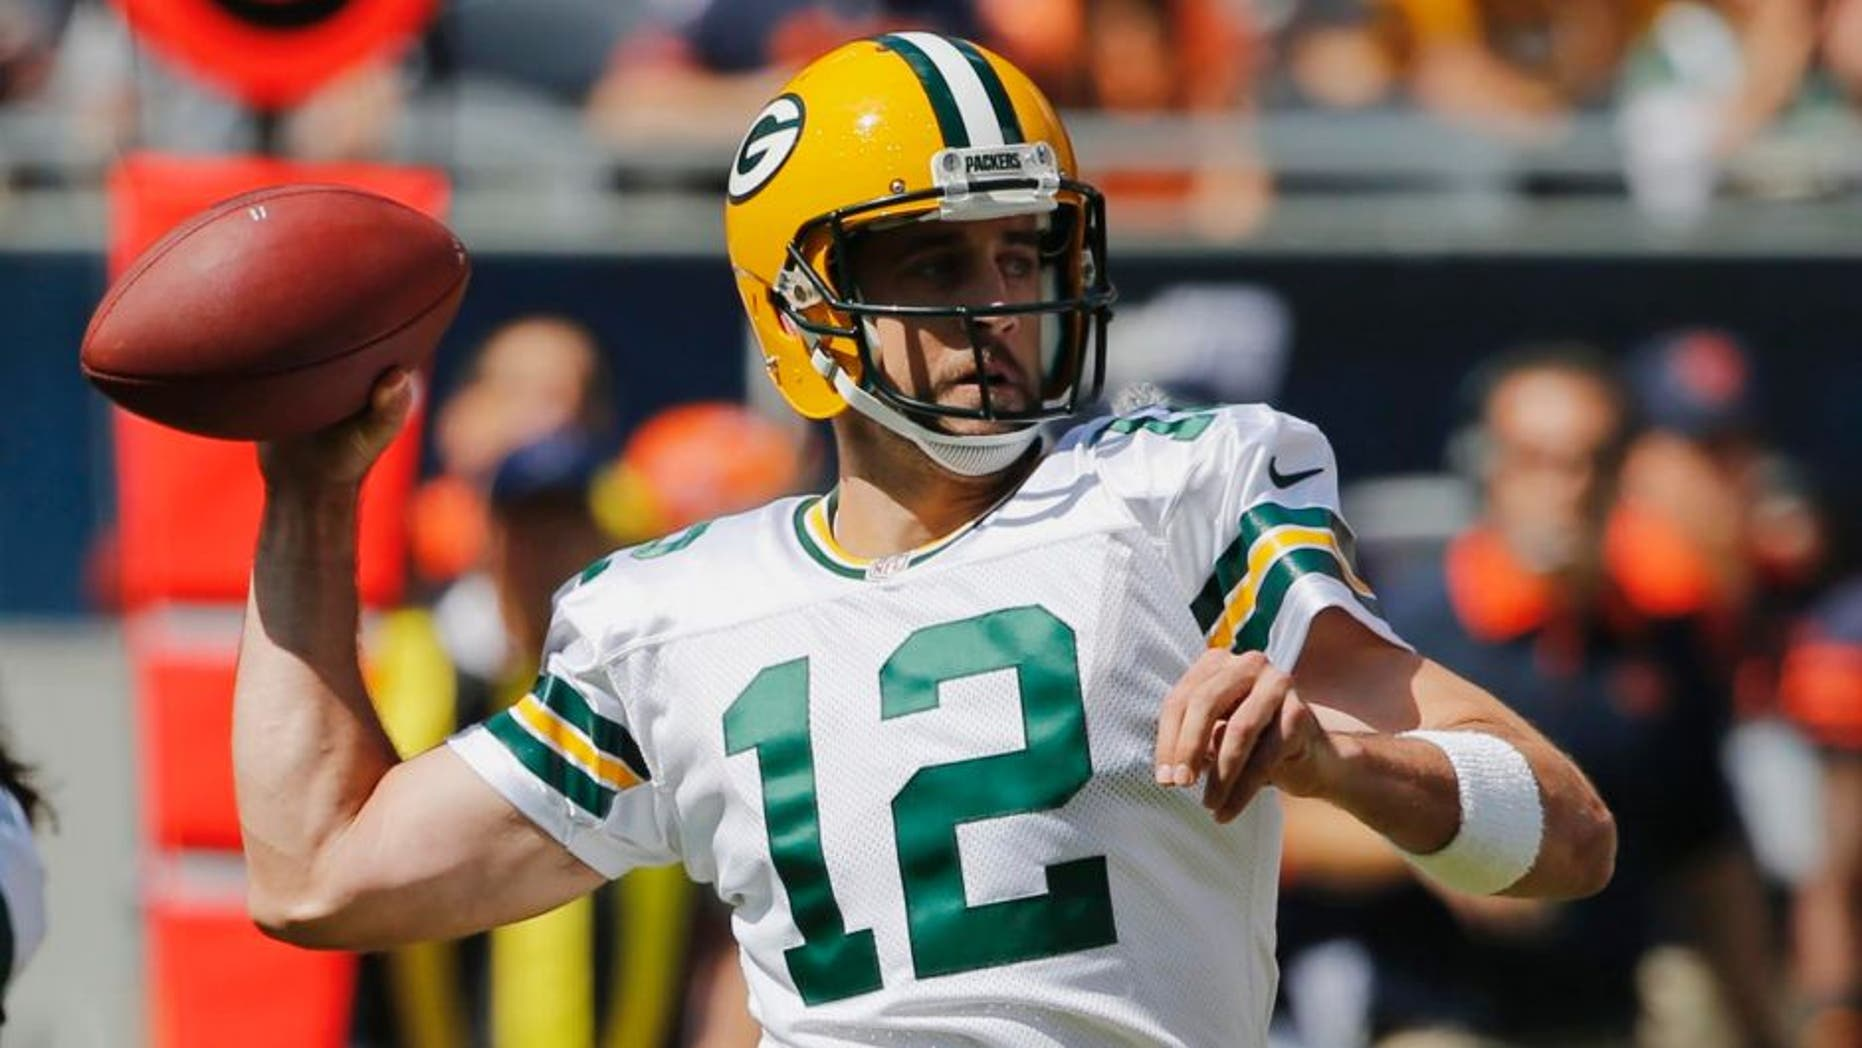 Green Bay Packers quarterback Aaron Rodgers throws a pass during the first half an NFL football game against the Chicago Bears, Sunday, Sept. 13, 2015, in Chicago.